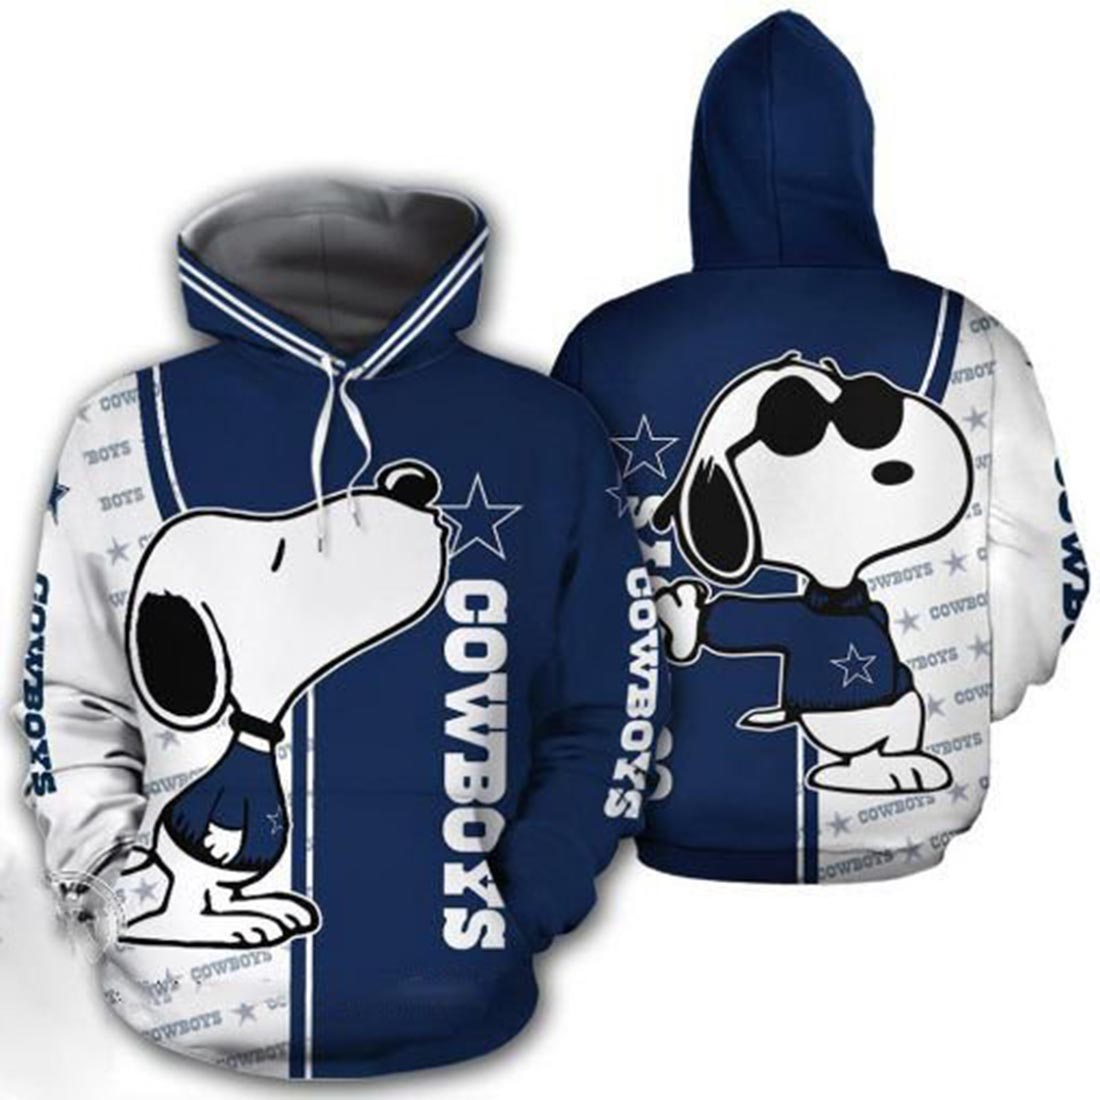 Snoopy And Dallas Cowboys 3d hoodie and t-shirt